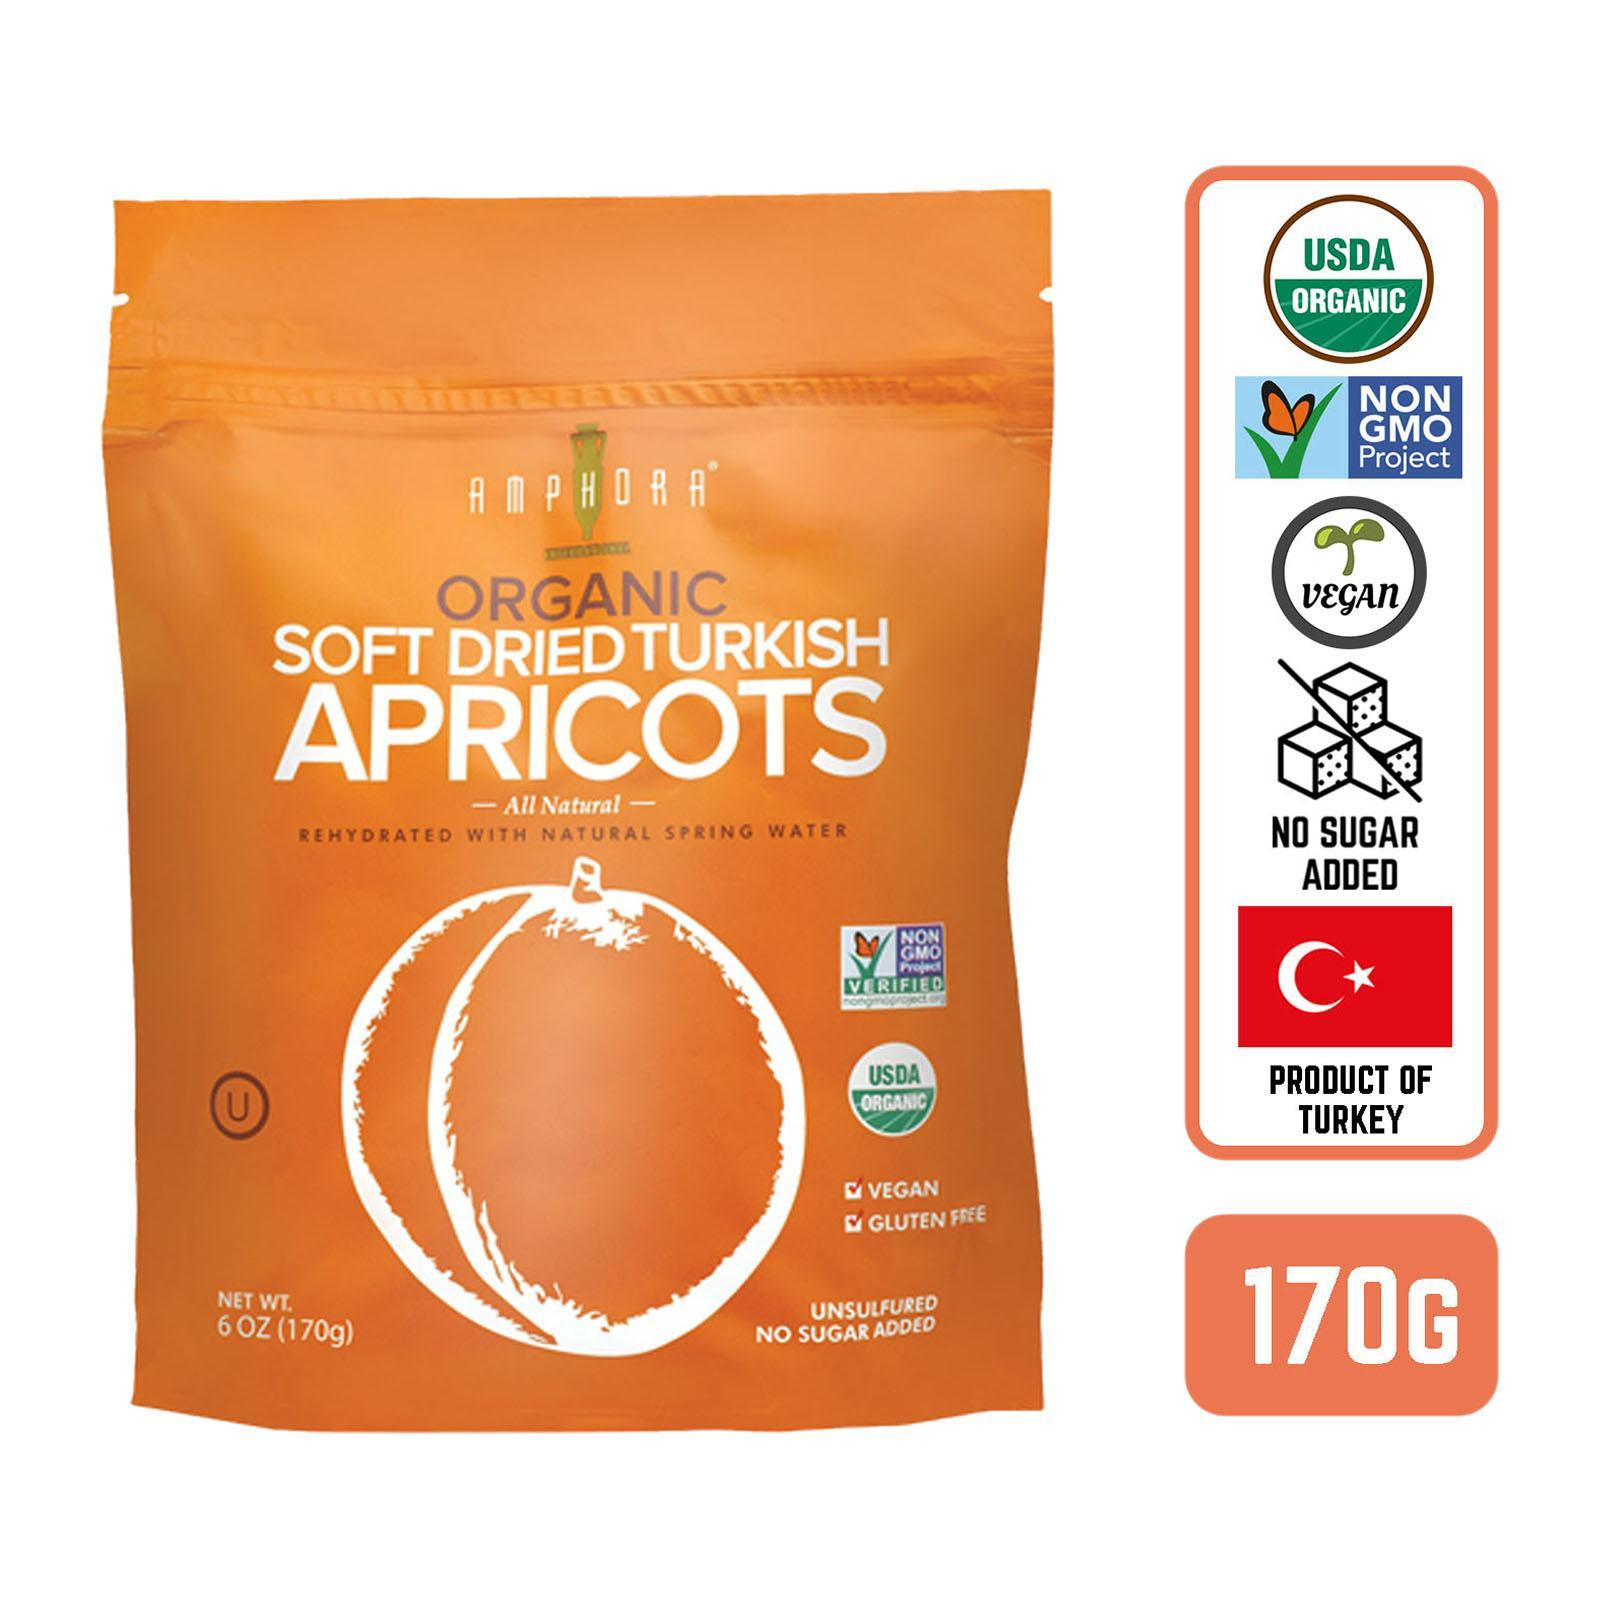 Amphora Organic Soft Dried Turkish Apricots - By Foodsterr